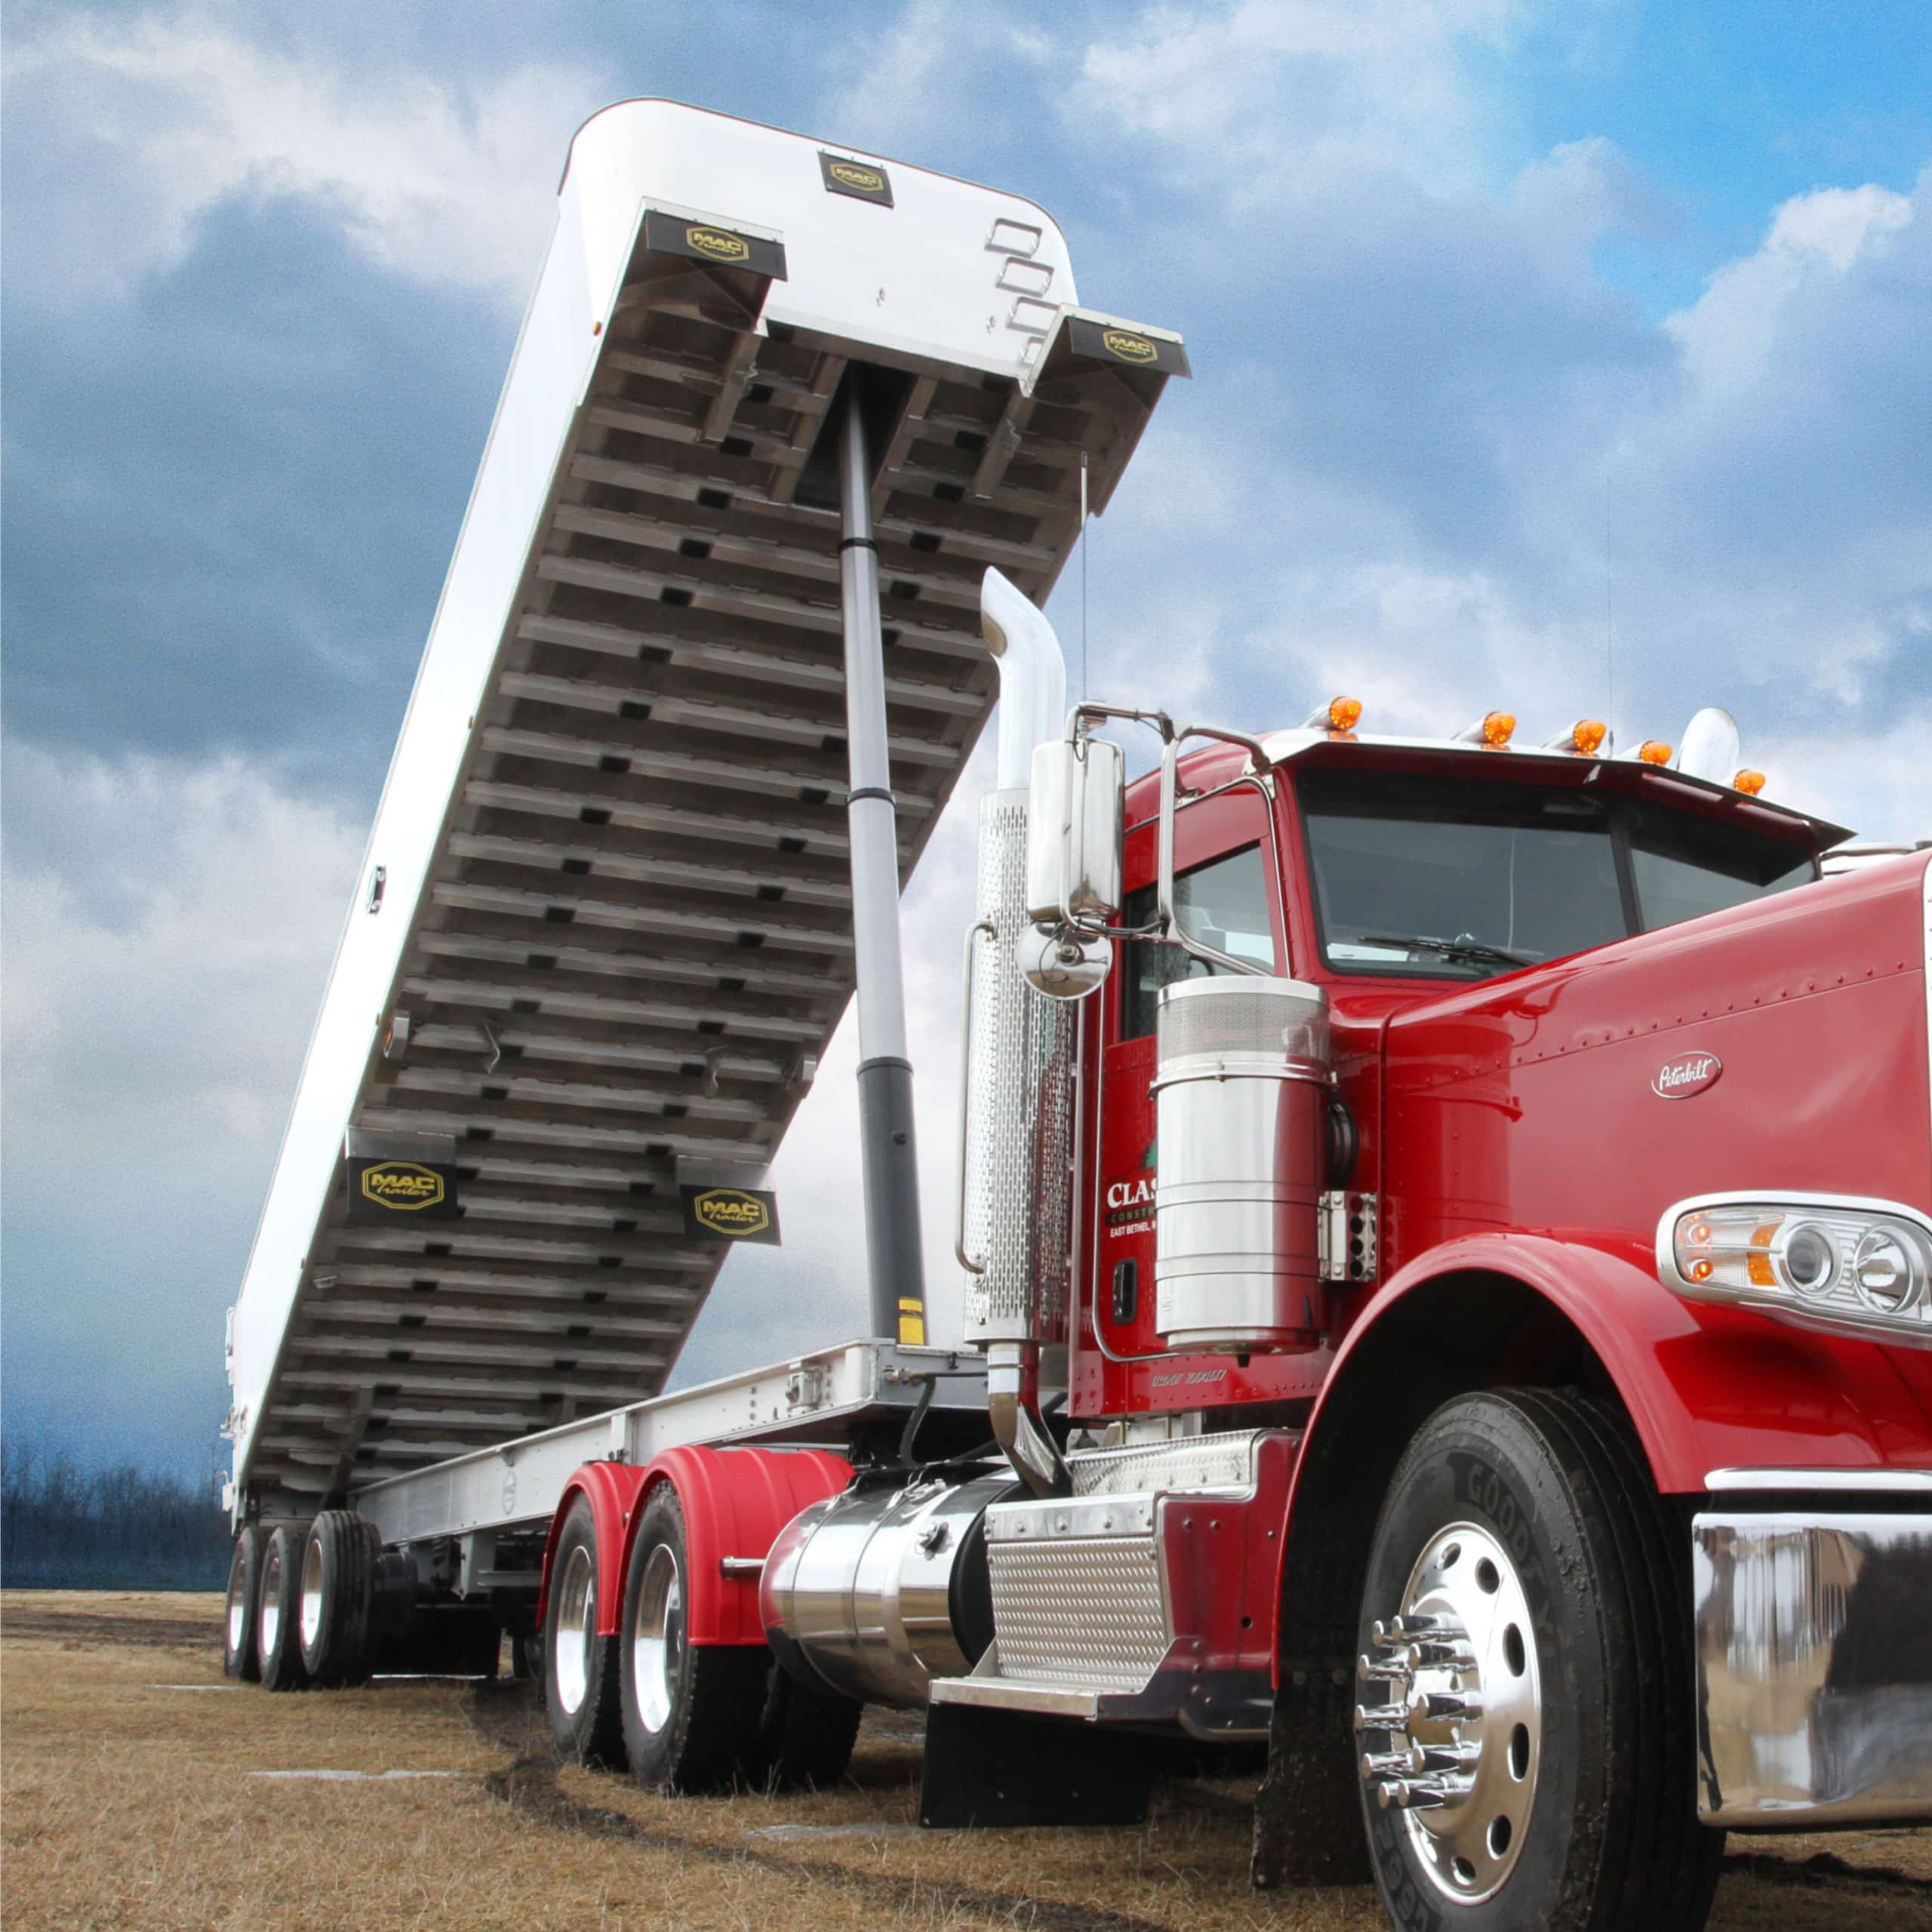 What Hydraulic Cylinder Do I Need For My Dump Body